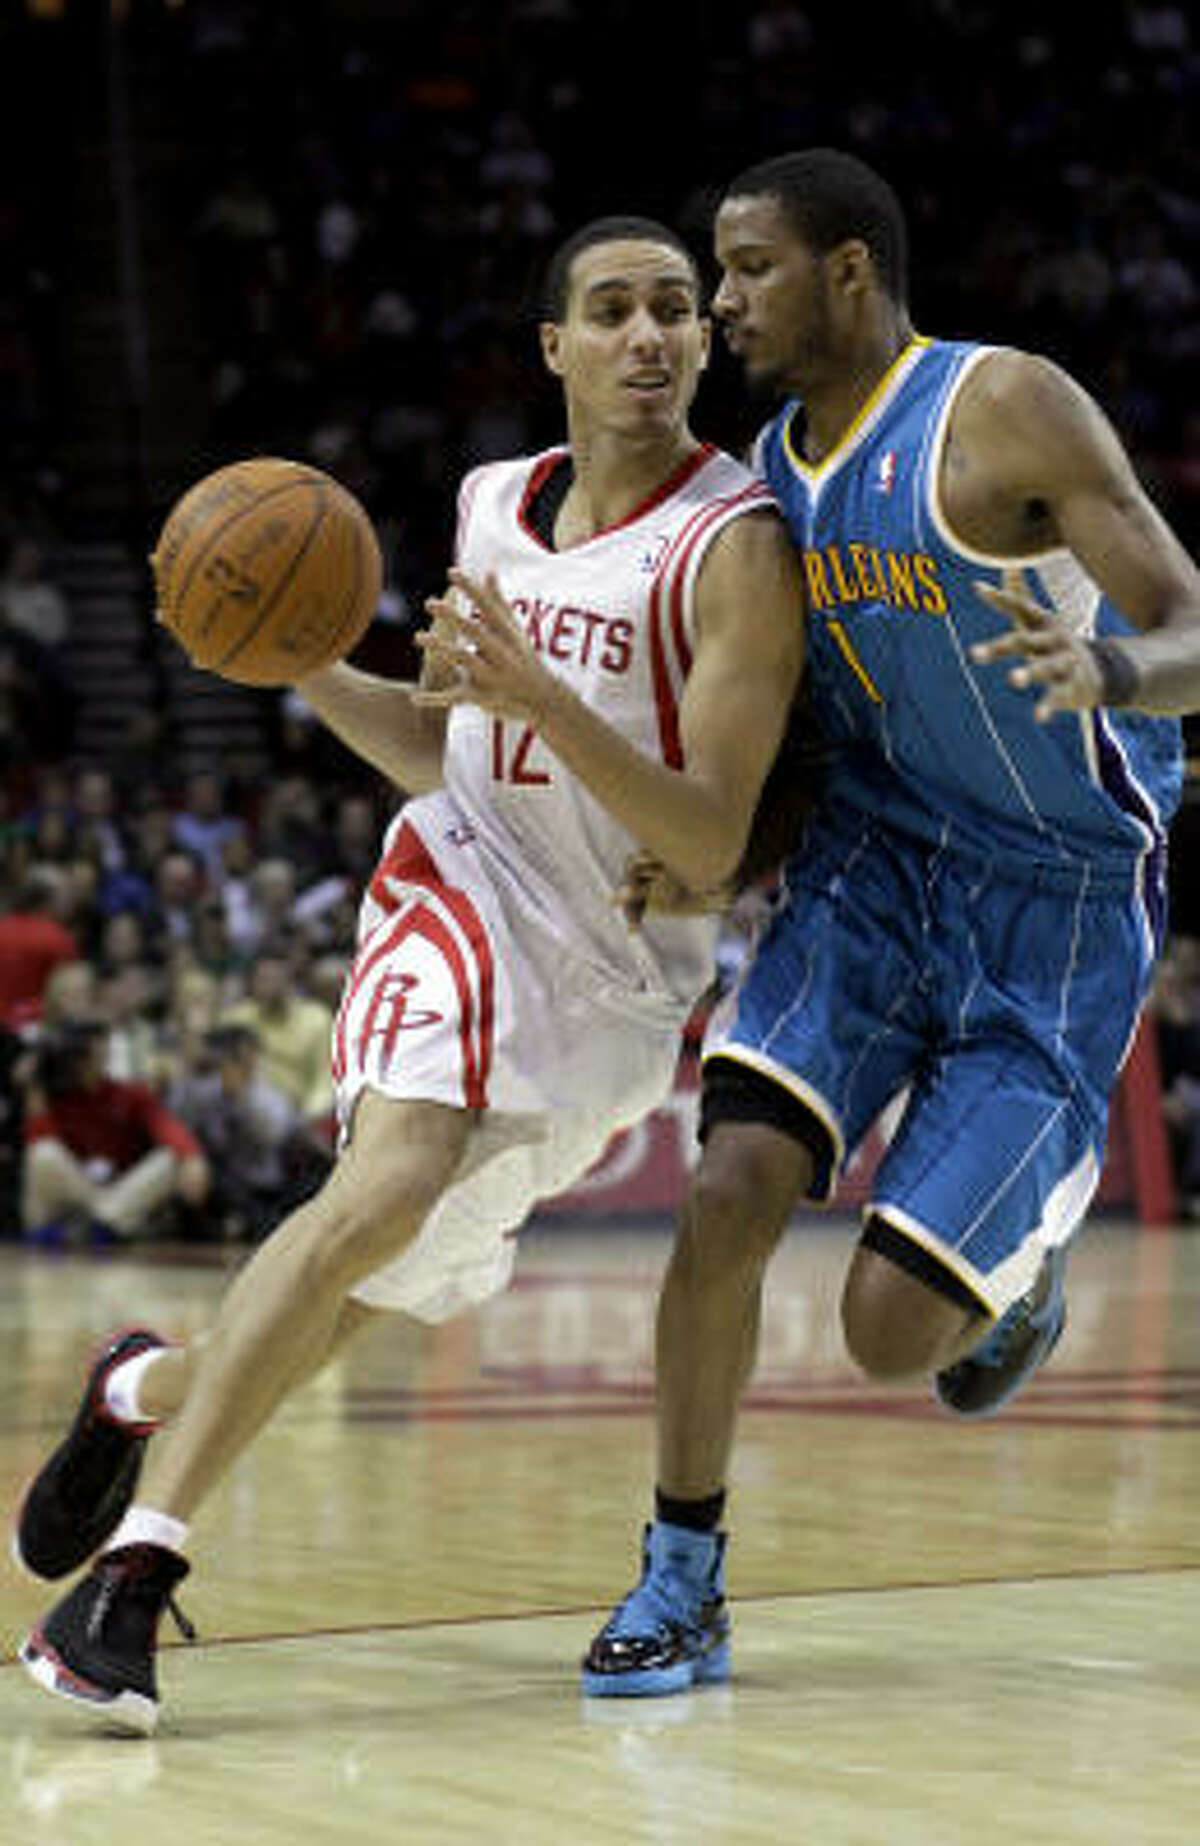 Rockets guard Kevin Martin, left, pushes against New Orleans' Trevor Ariza on his way to the basket in the second half. Martin finished with 26 points.